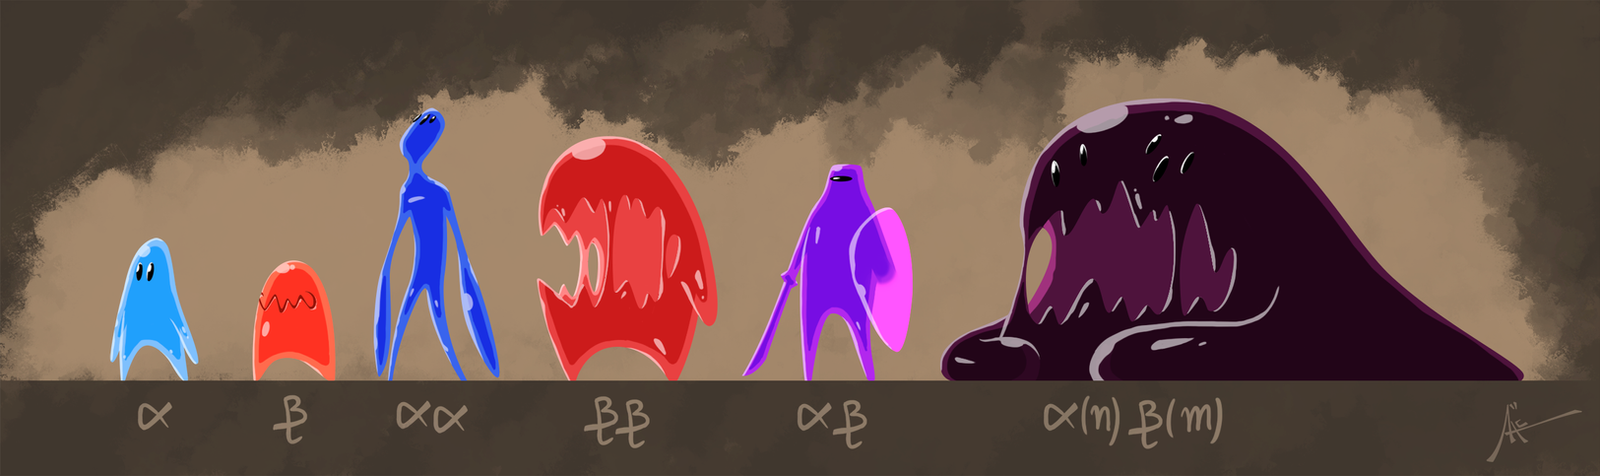 SLIMES by AceCavelier